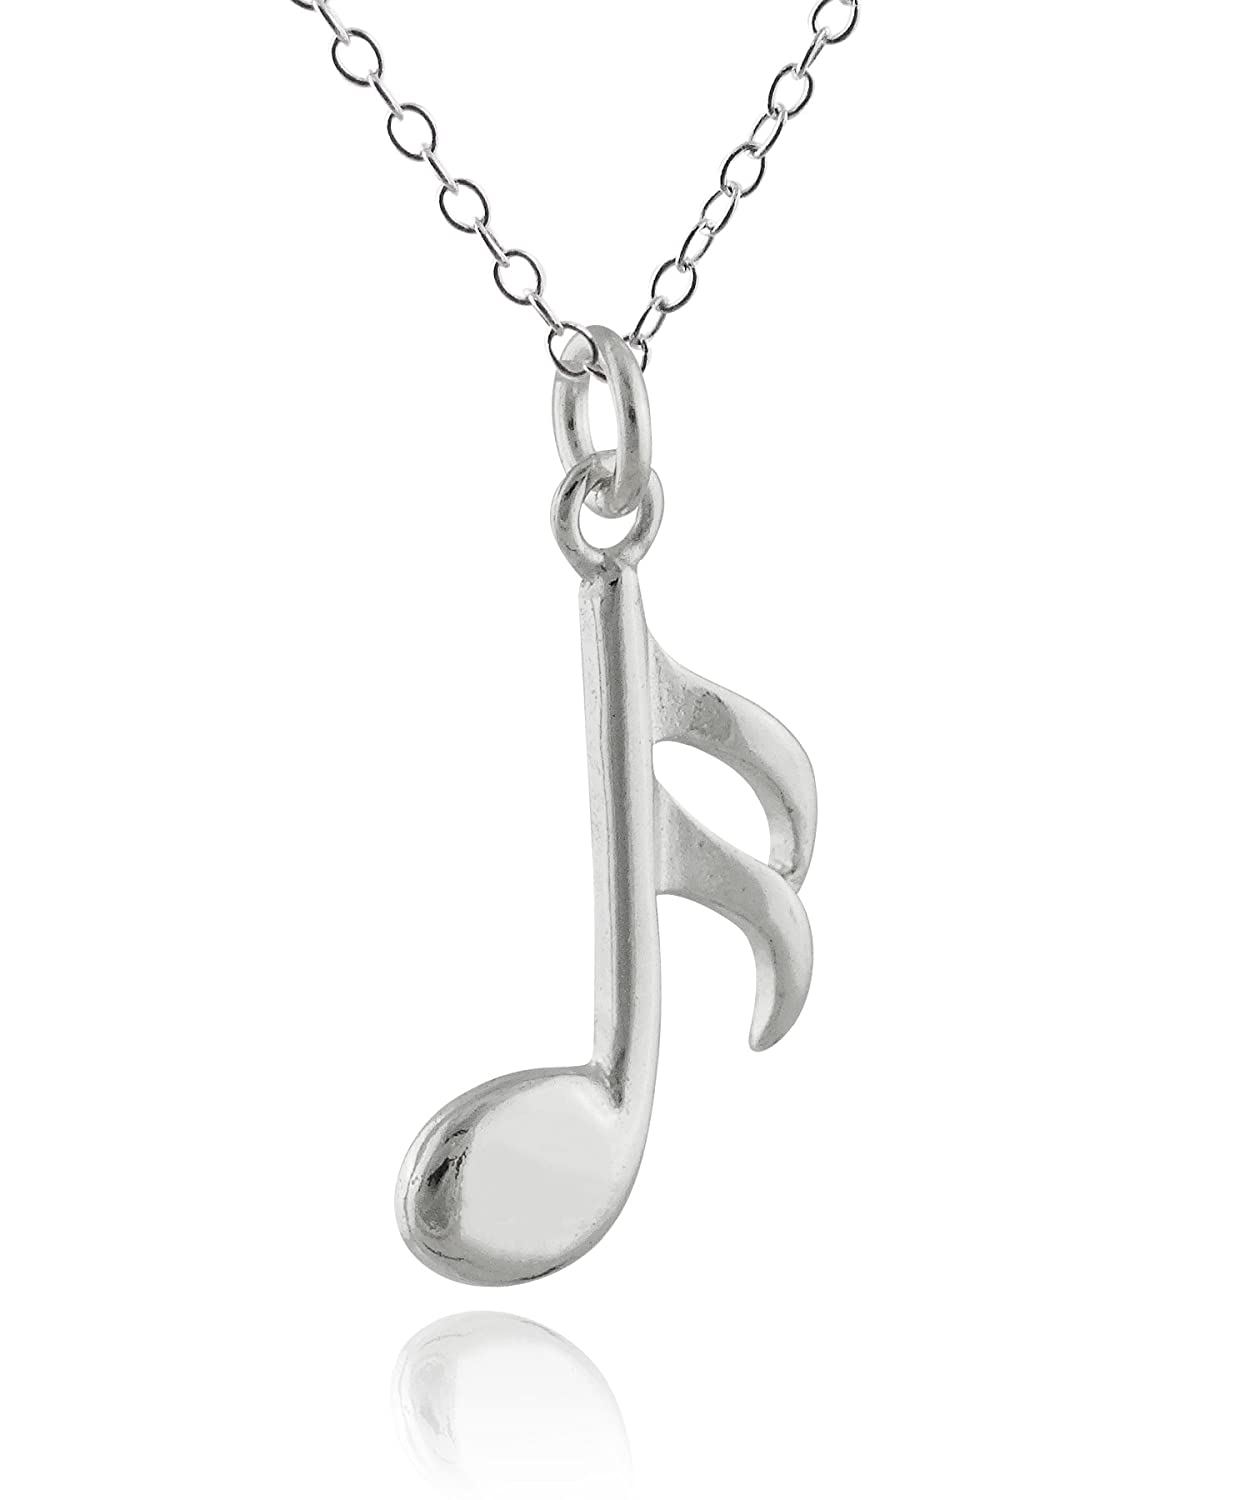 FashionJunkie4Life Sterling Silver Sixteenth Music Note Charm Pendant Necklace 18 Chain